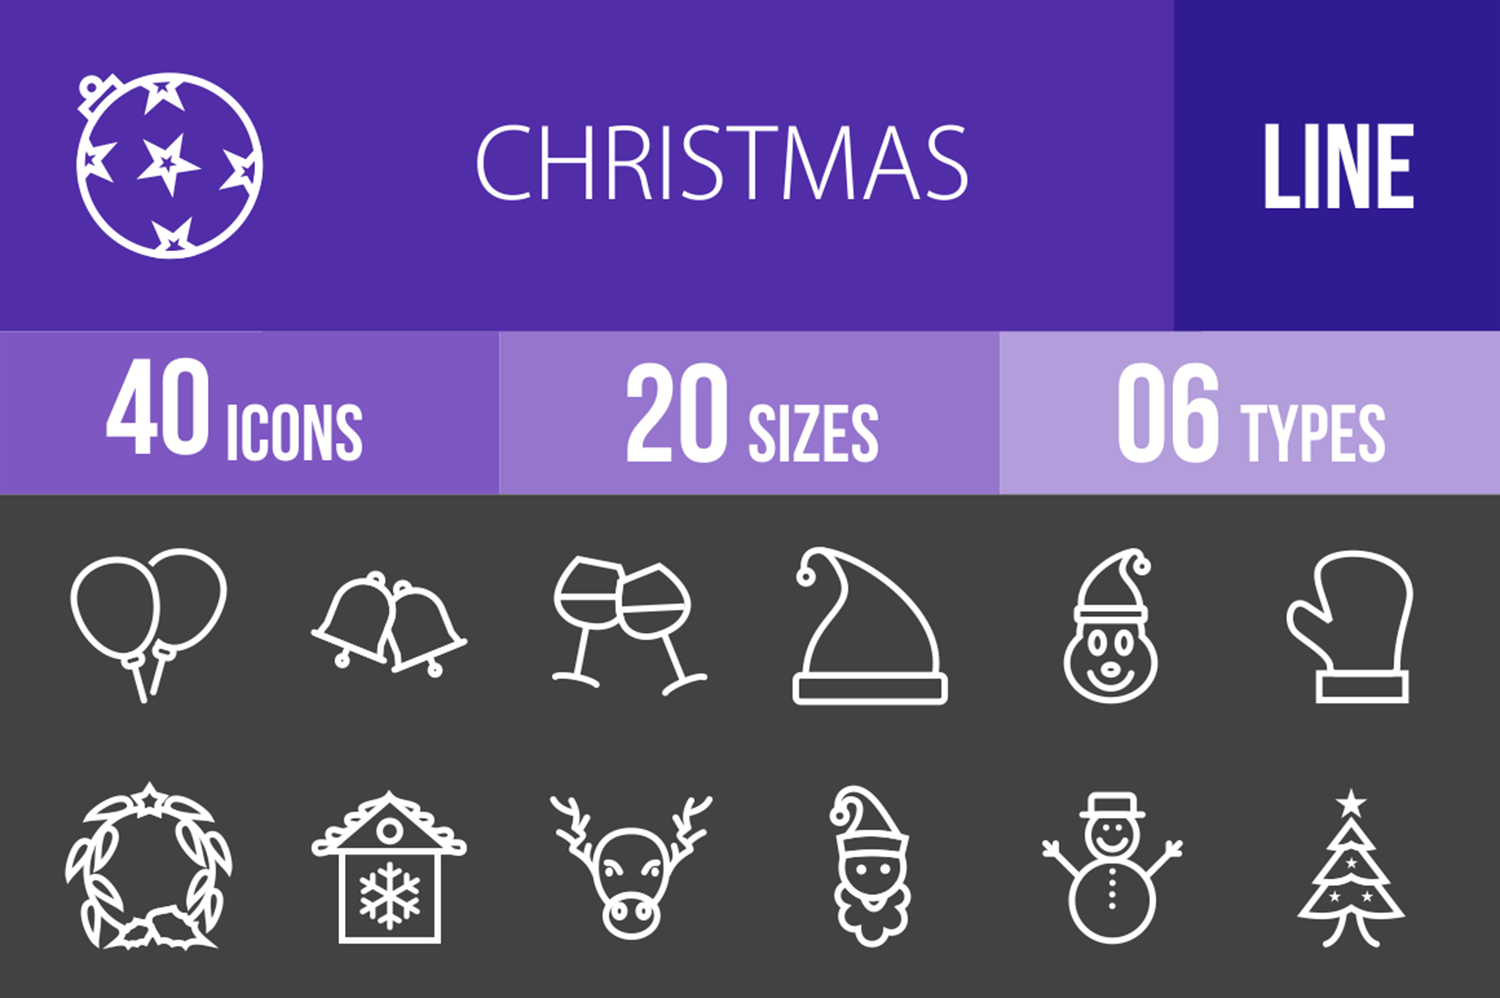 40 Christmas Line Inverted Icons example image 1